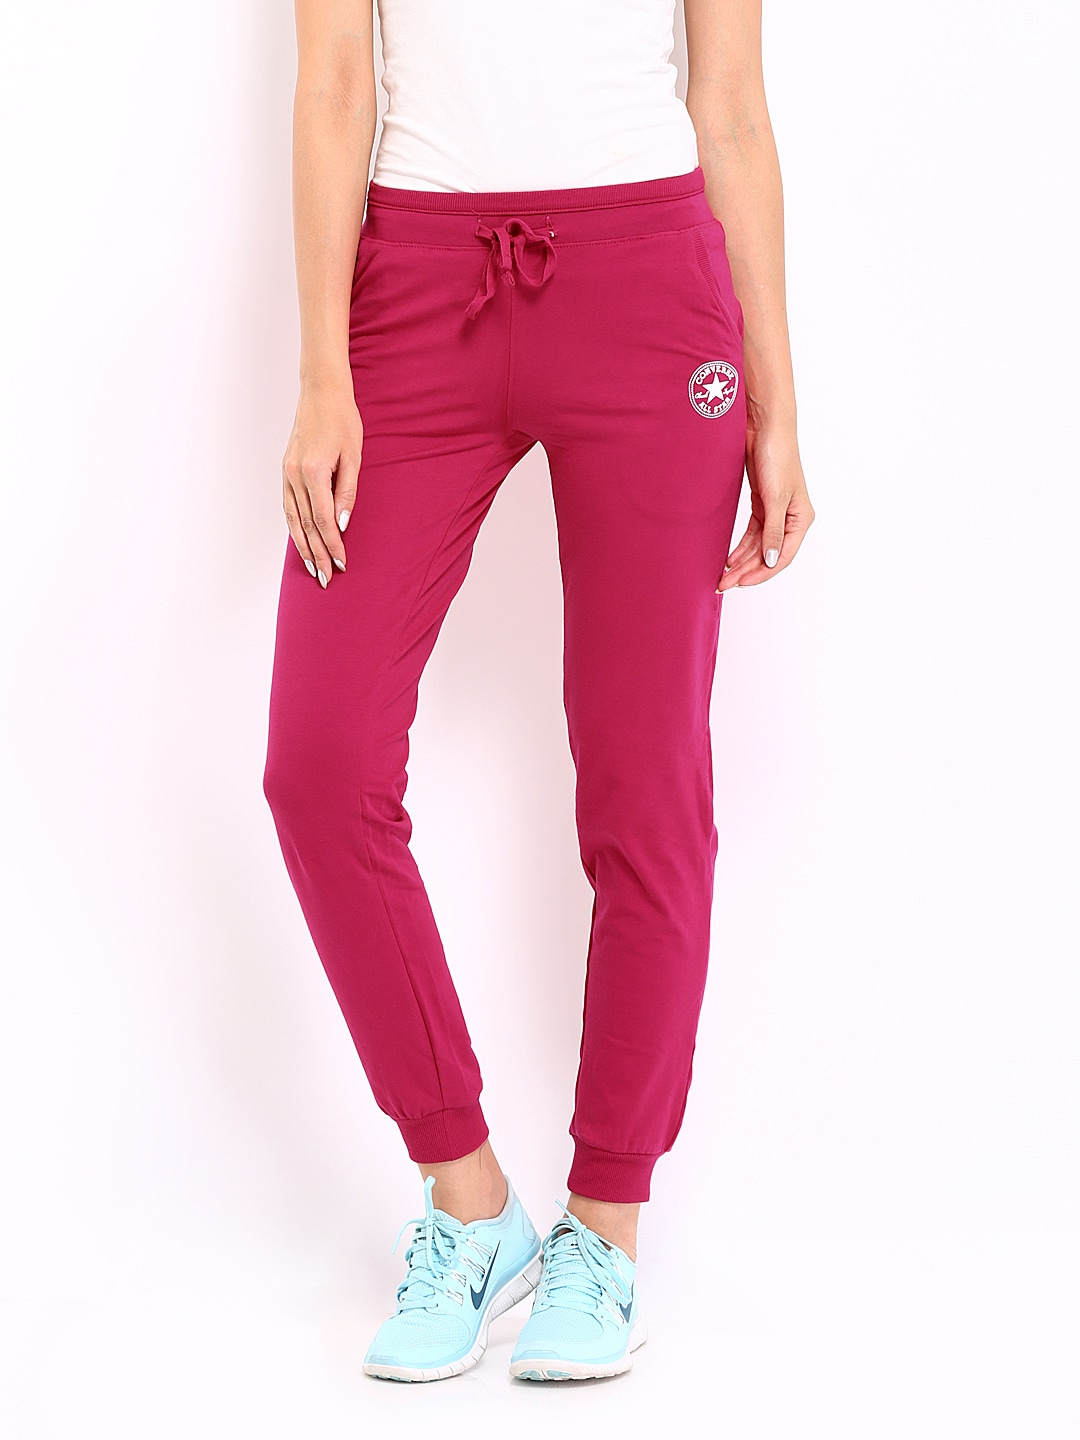 Shop for womens track pants available online or in a rebel store near you - Find all the latest sportswear and gear from top sport brands in Australia.